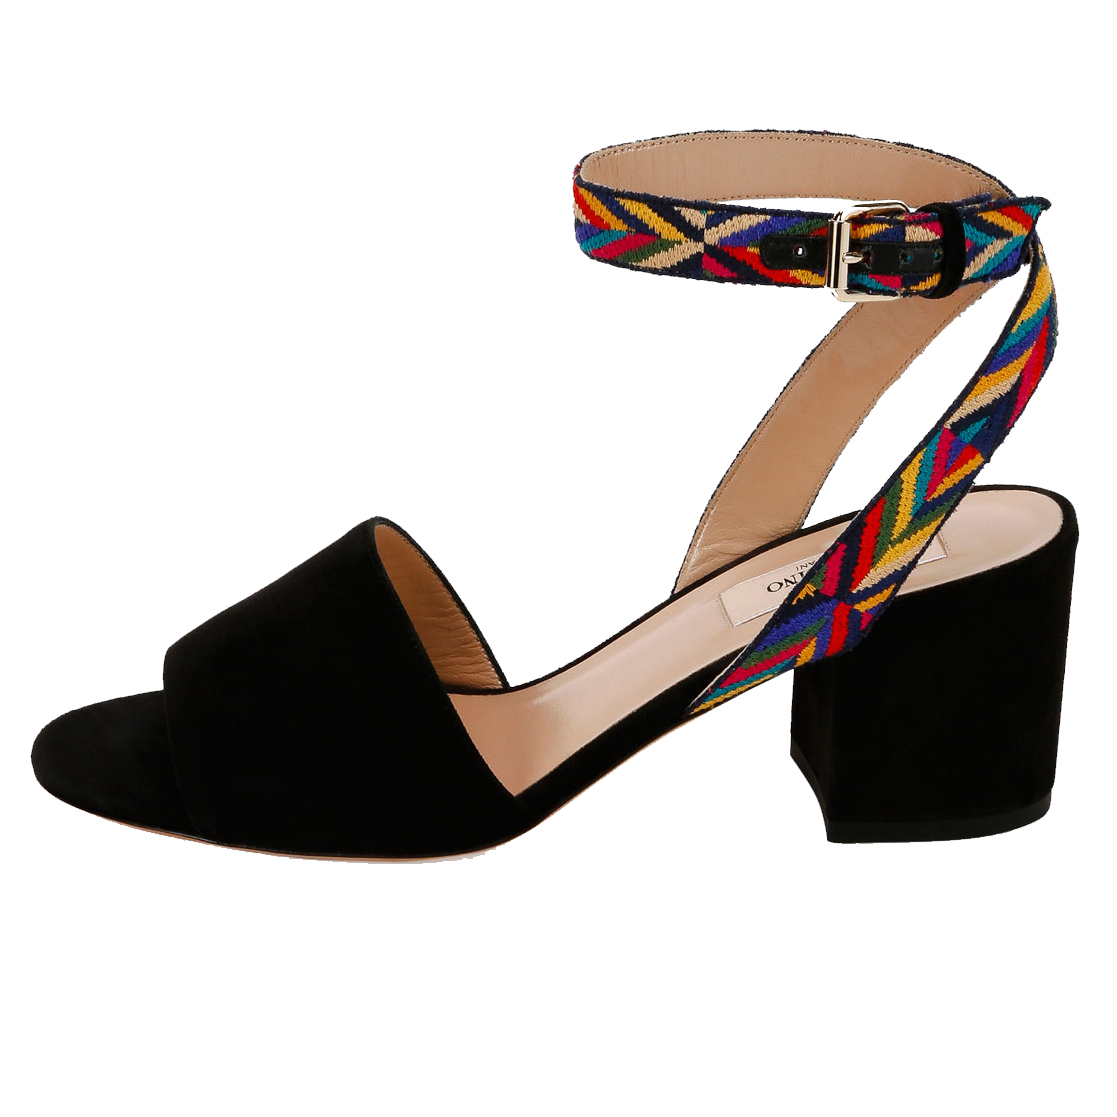 1117x1117 13 Stunning (And Legit Comfy) Shoes For Wide Feet Wide Feet